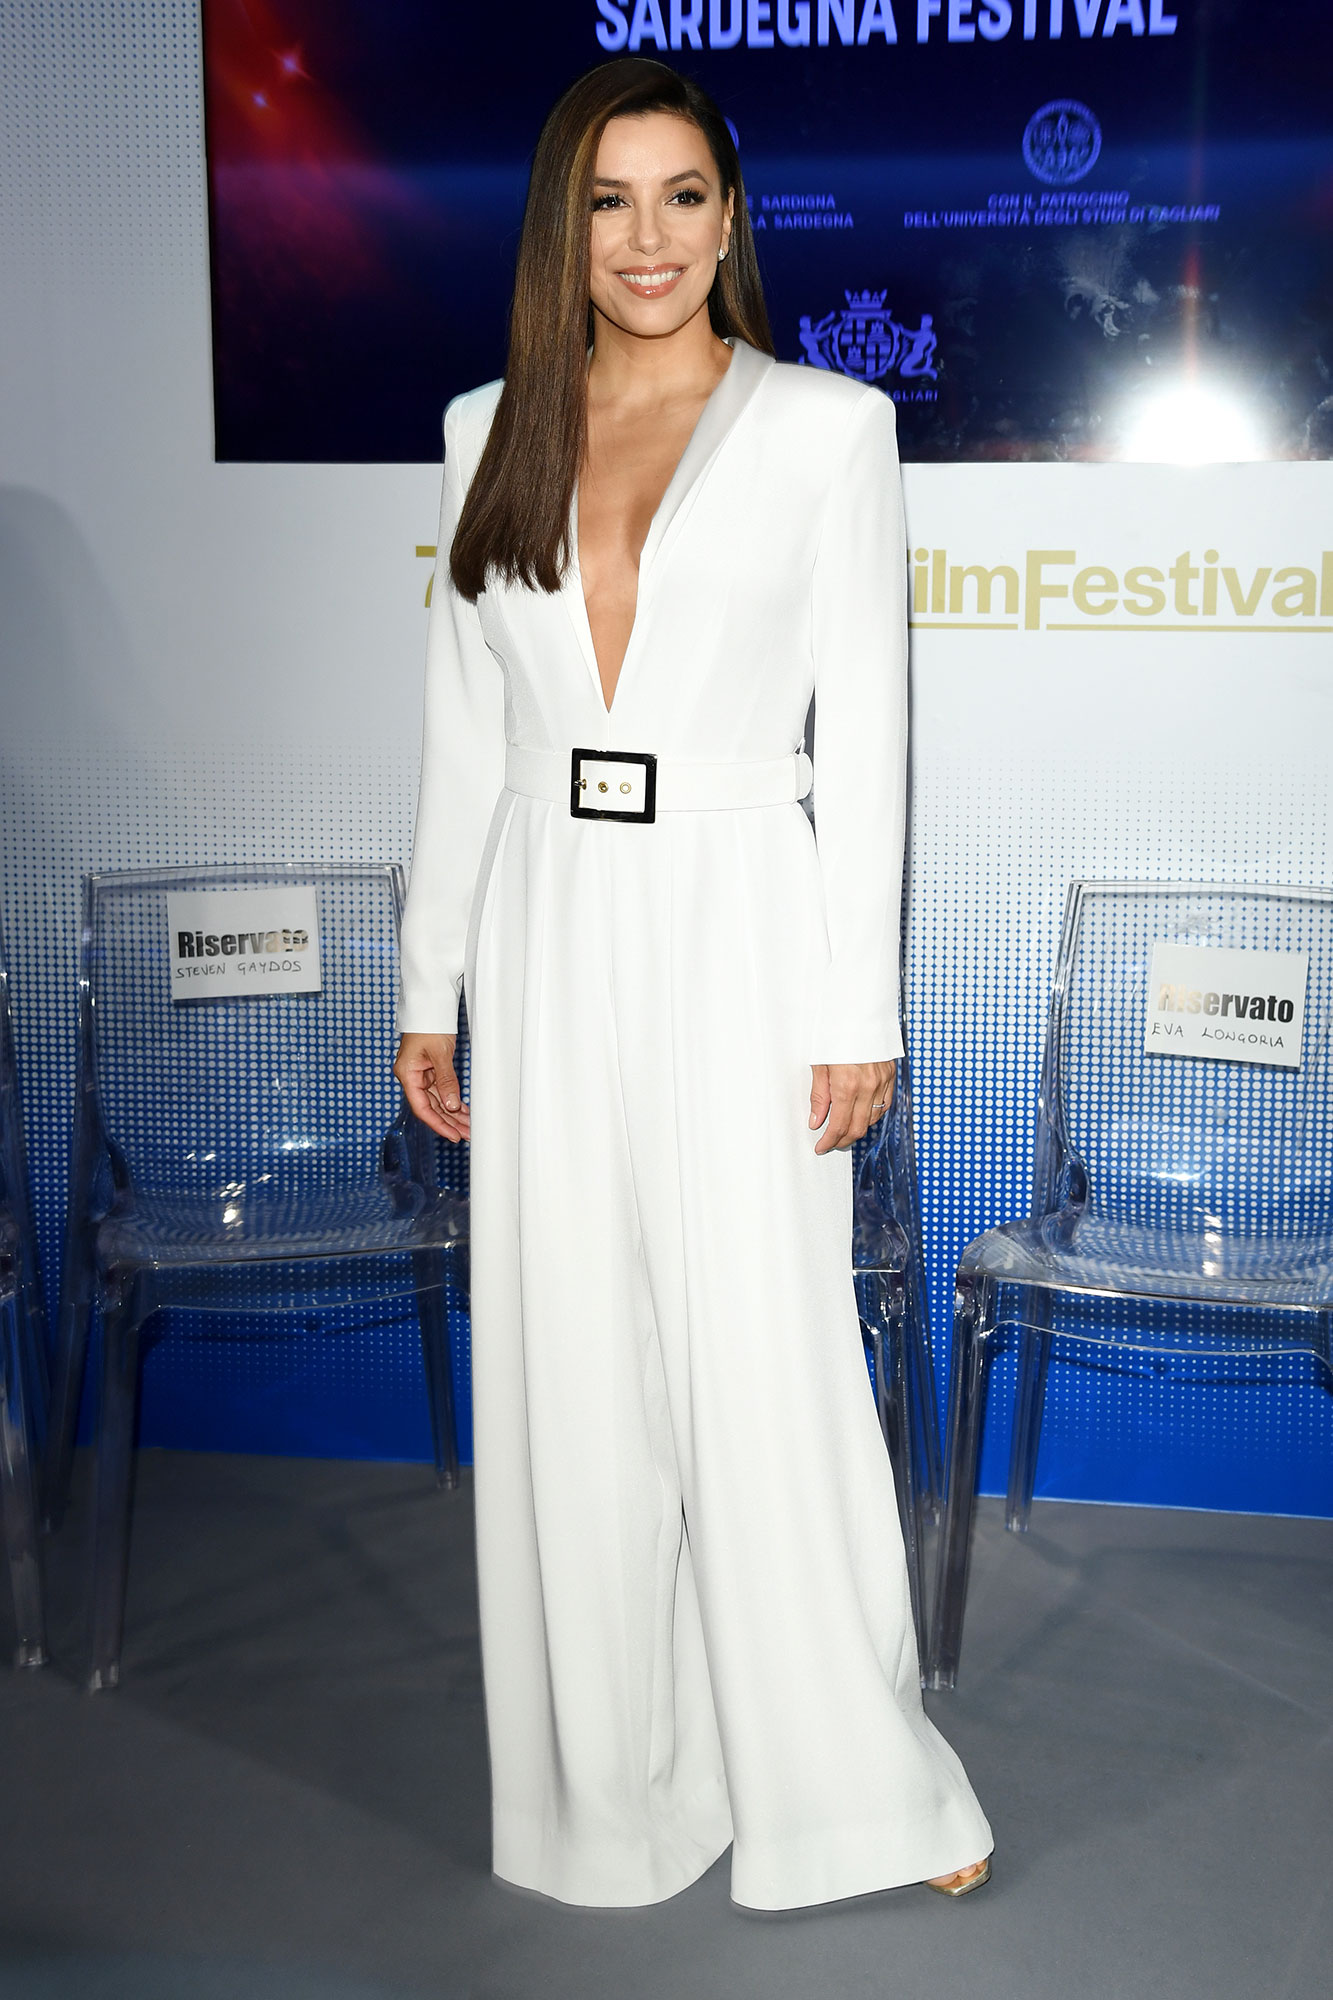 Stepping Out in Style at Cannes Film Festival - The actress rocked a plunging Alberta Ferretti pantsuit at the Sardegna Festival photocall on Saturday, May 18.